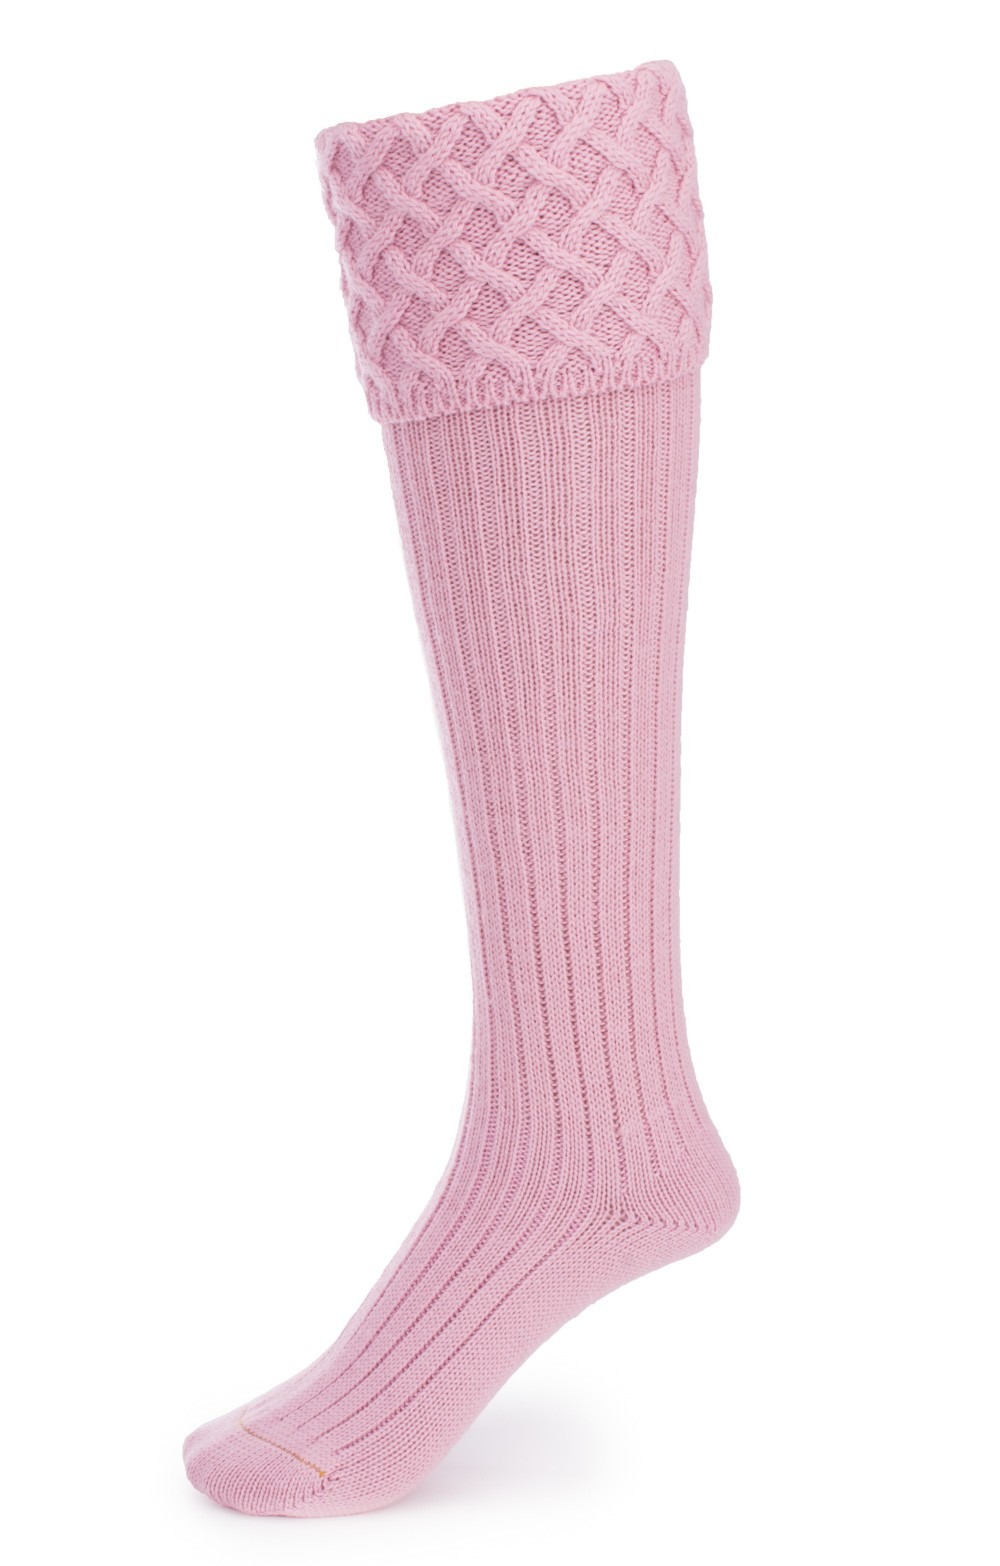 cafc077269e88 Ladies Merino Cable Socks | Ladies Socks & Tights | House Of Bruar